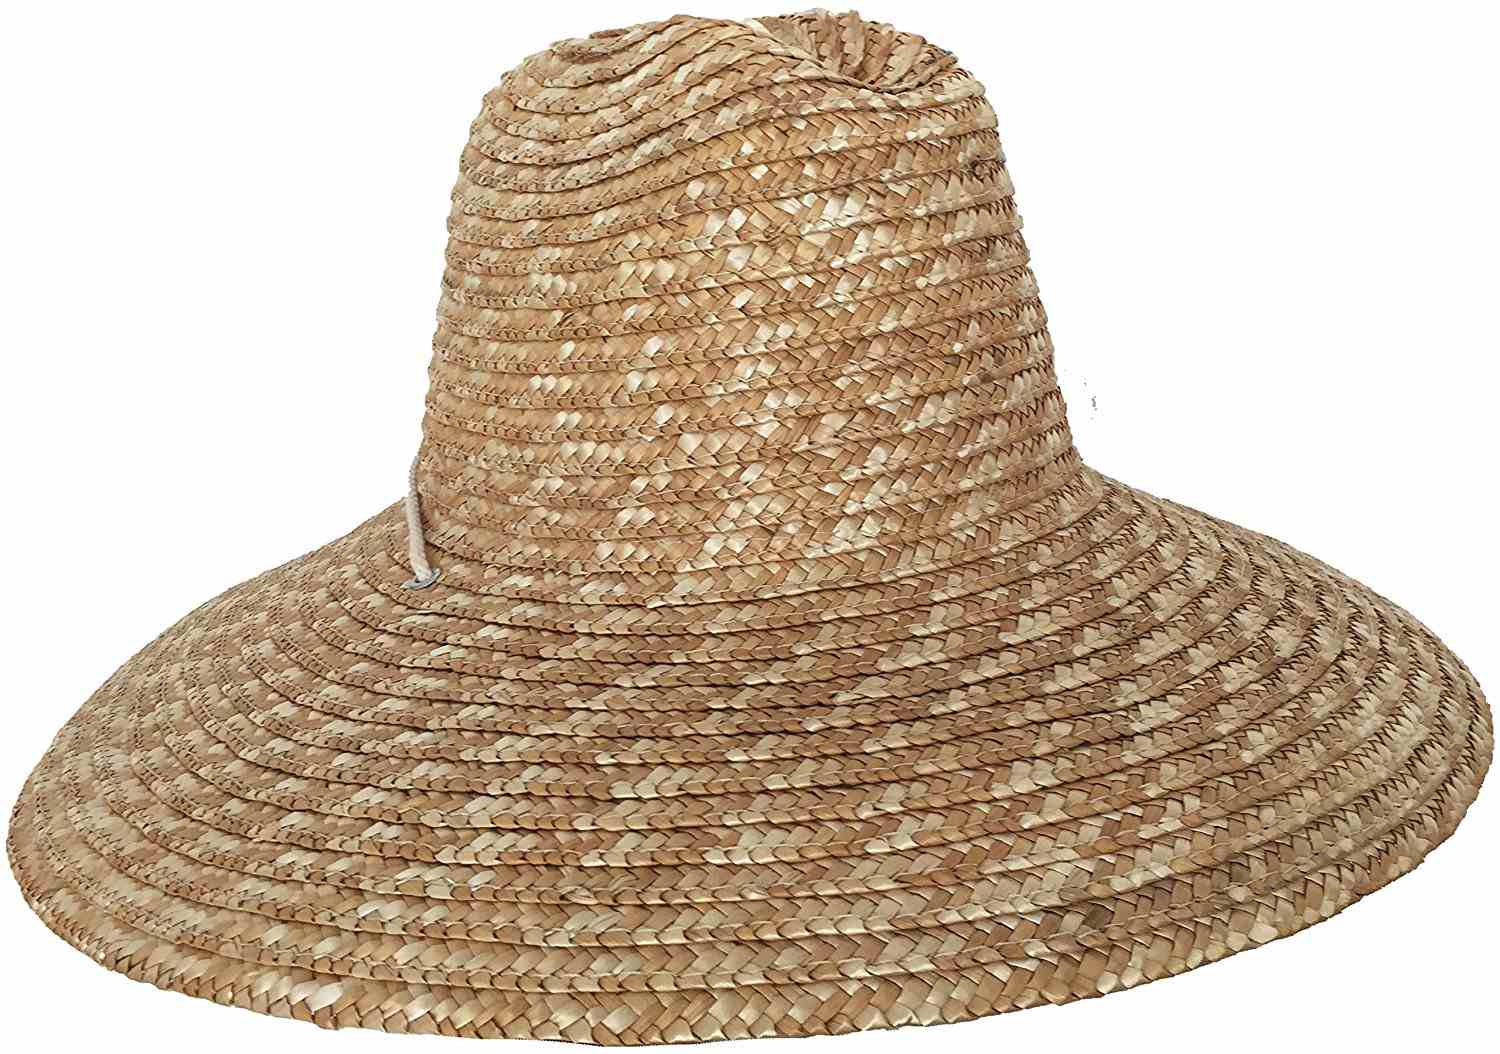 Super Wide Brim Lifeguard Hat Straw Beach Sun Summer Surf Safari Gardening  UPF 12d26f08e94